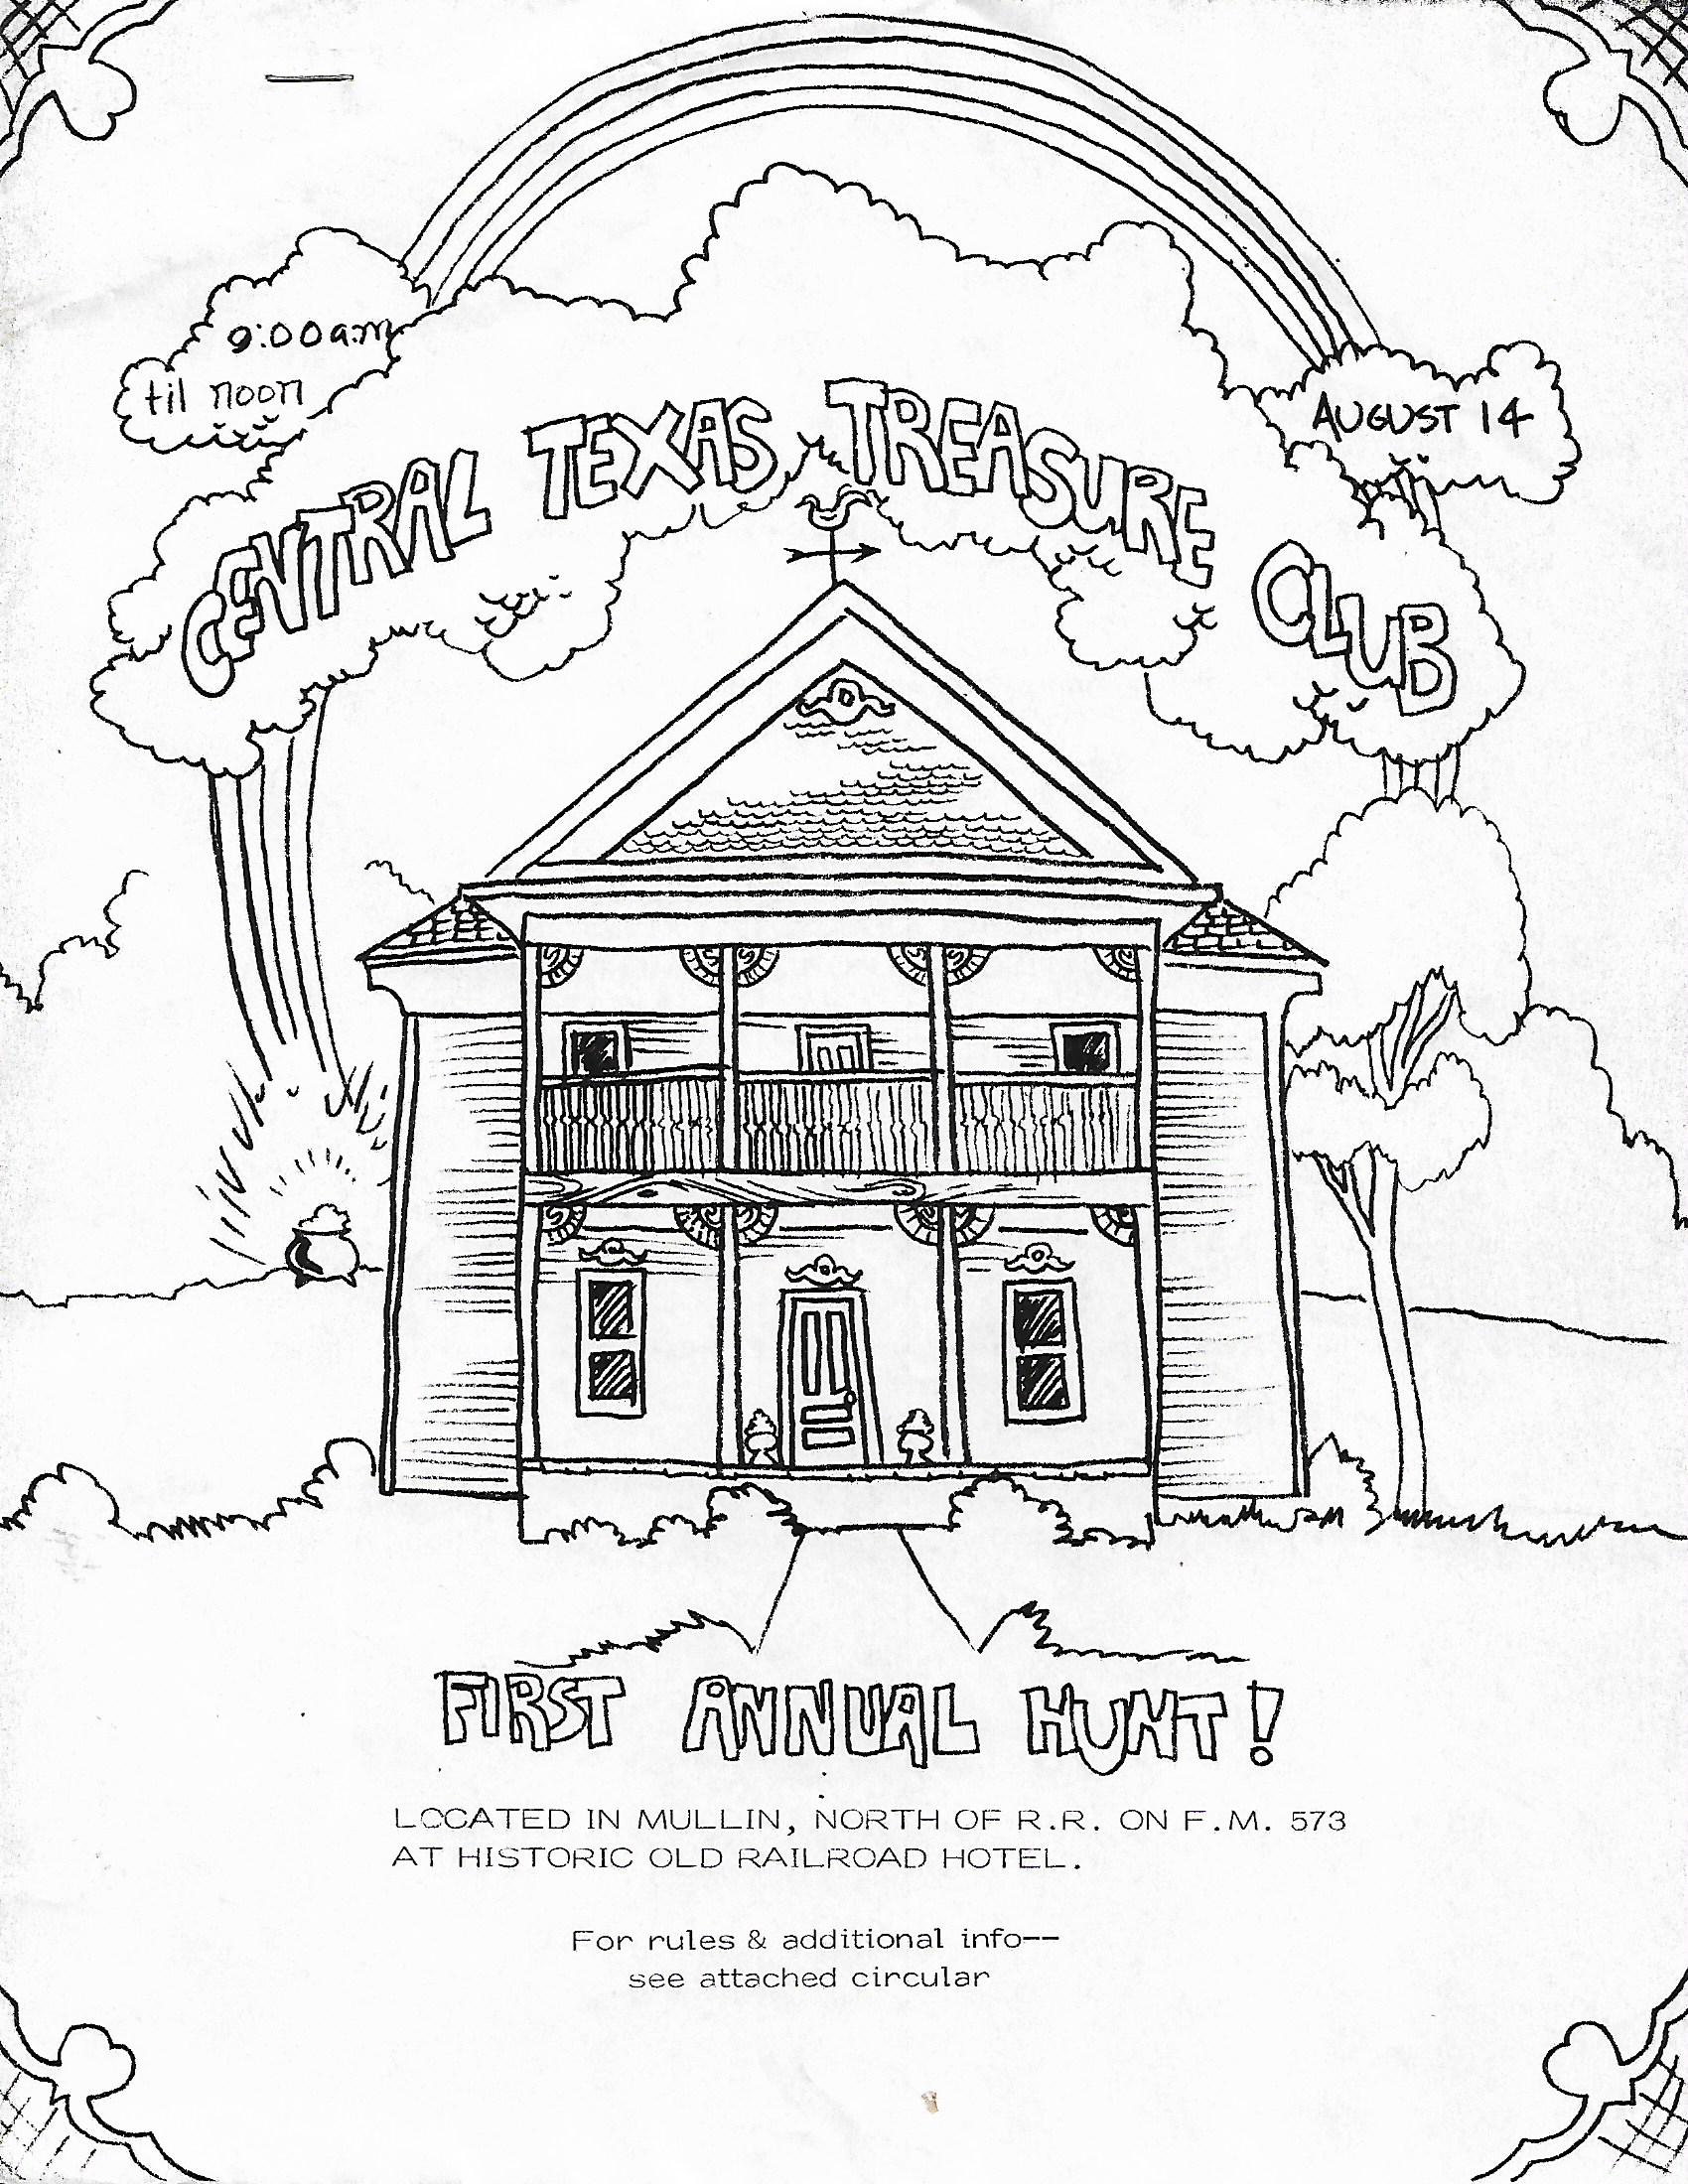 CTTC First Annual Hunt Flyer - 1982